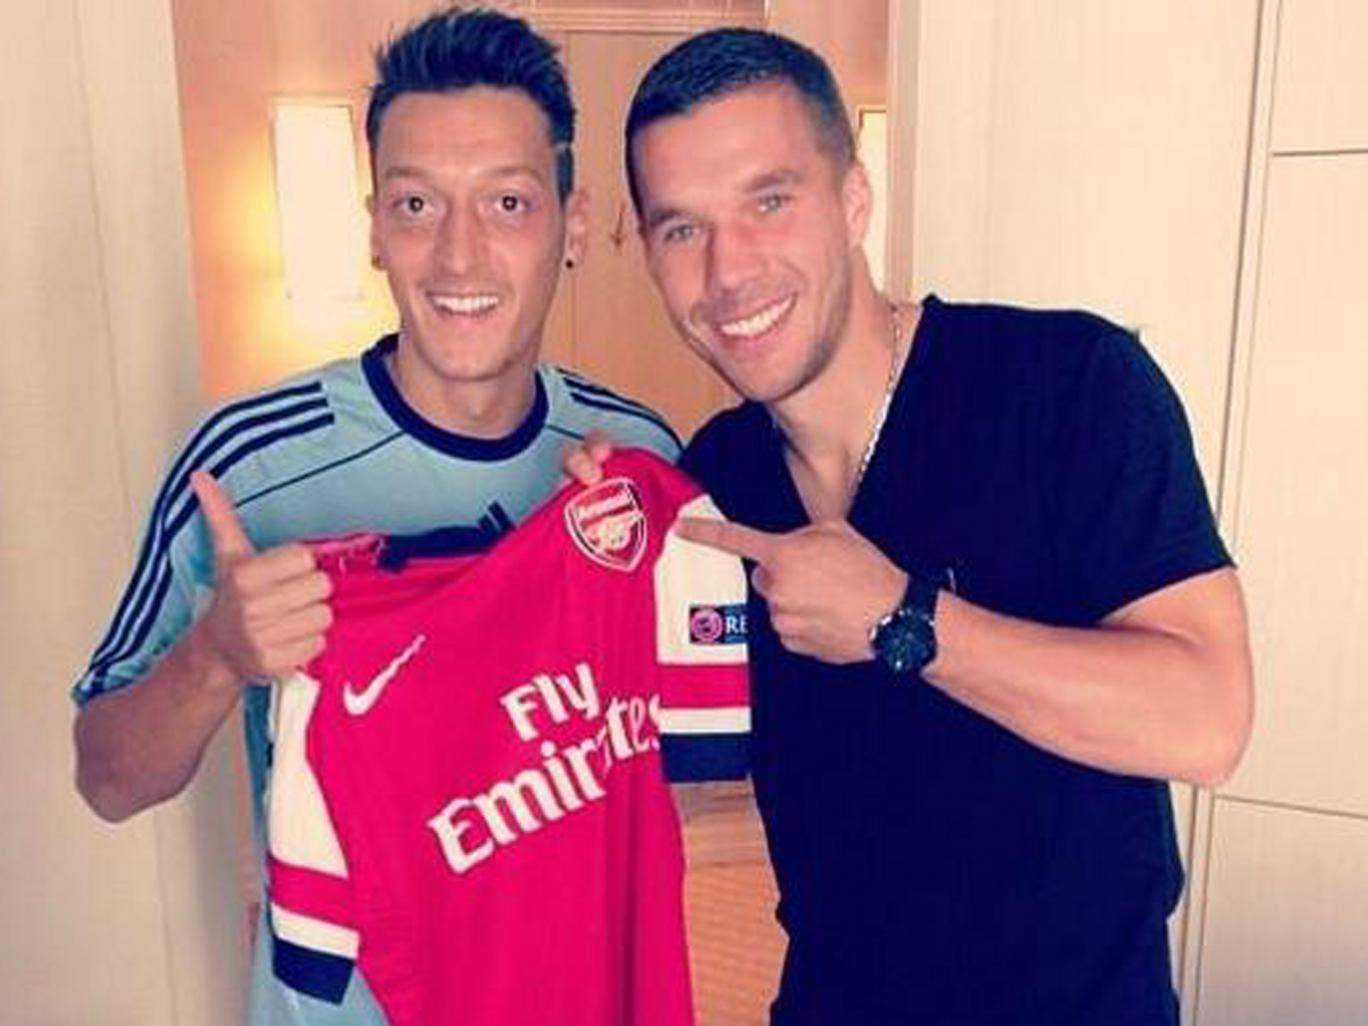 Mesut Ozil poses with new Arsenal team-mate Lukas Podolski while on duty with the Germany. Podolski, currently out with a hamstring injury, was being examined by the national team doctor